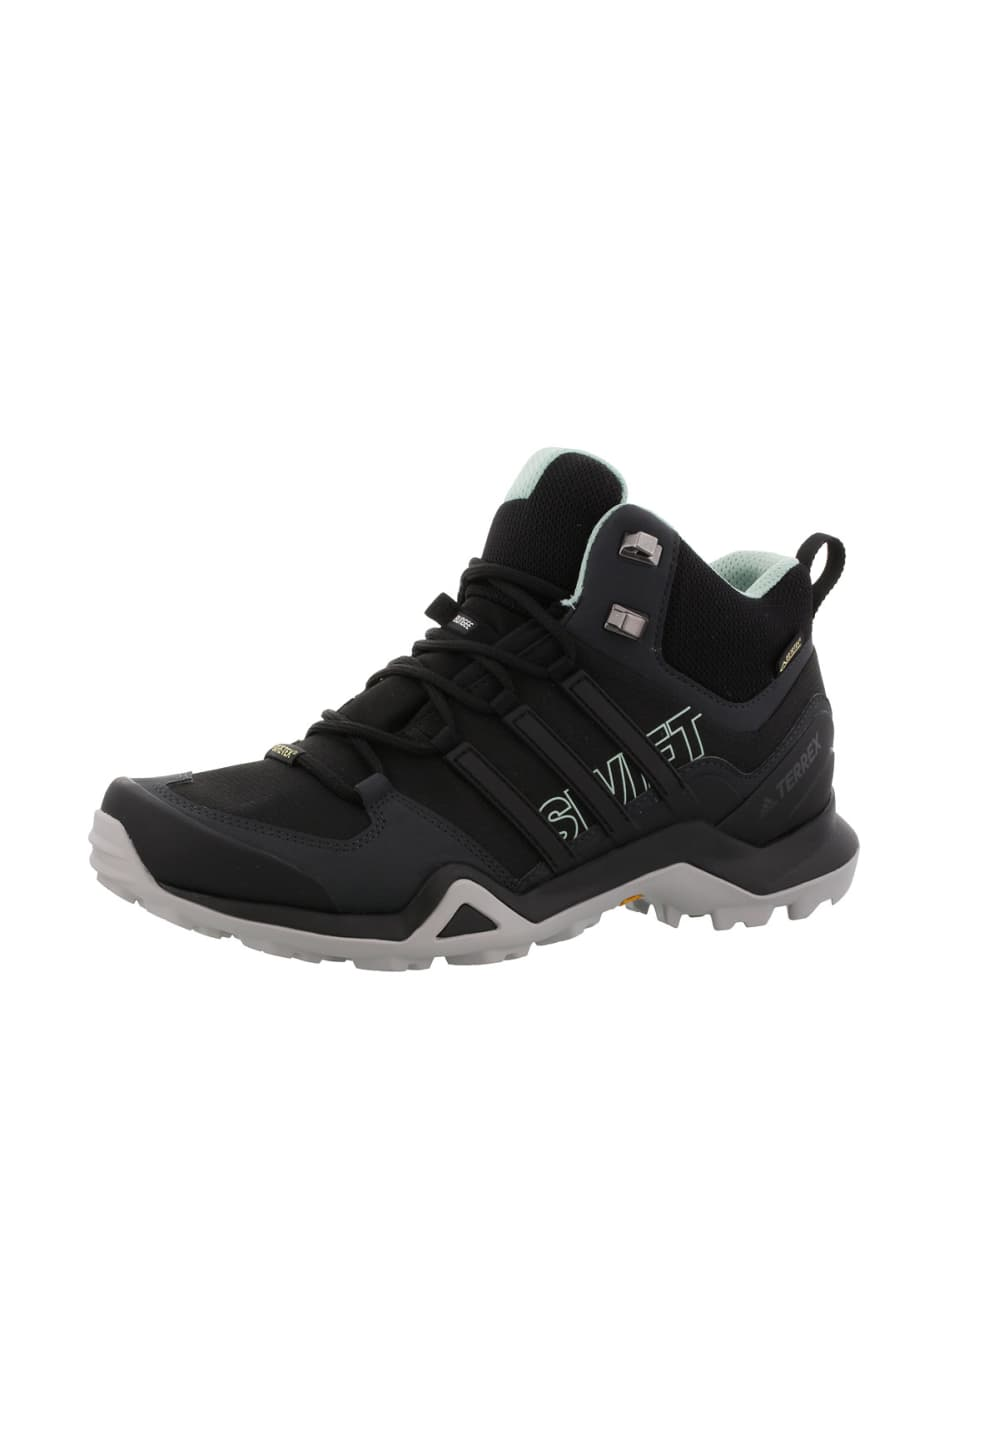 official photos 03515 e75ca Next. -60%. adidas TERREX. Terrex Swift R2 Mid Gtx - Calzado outdoor para  Mujer